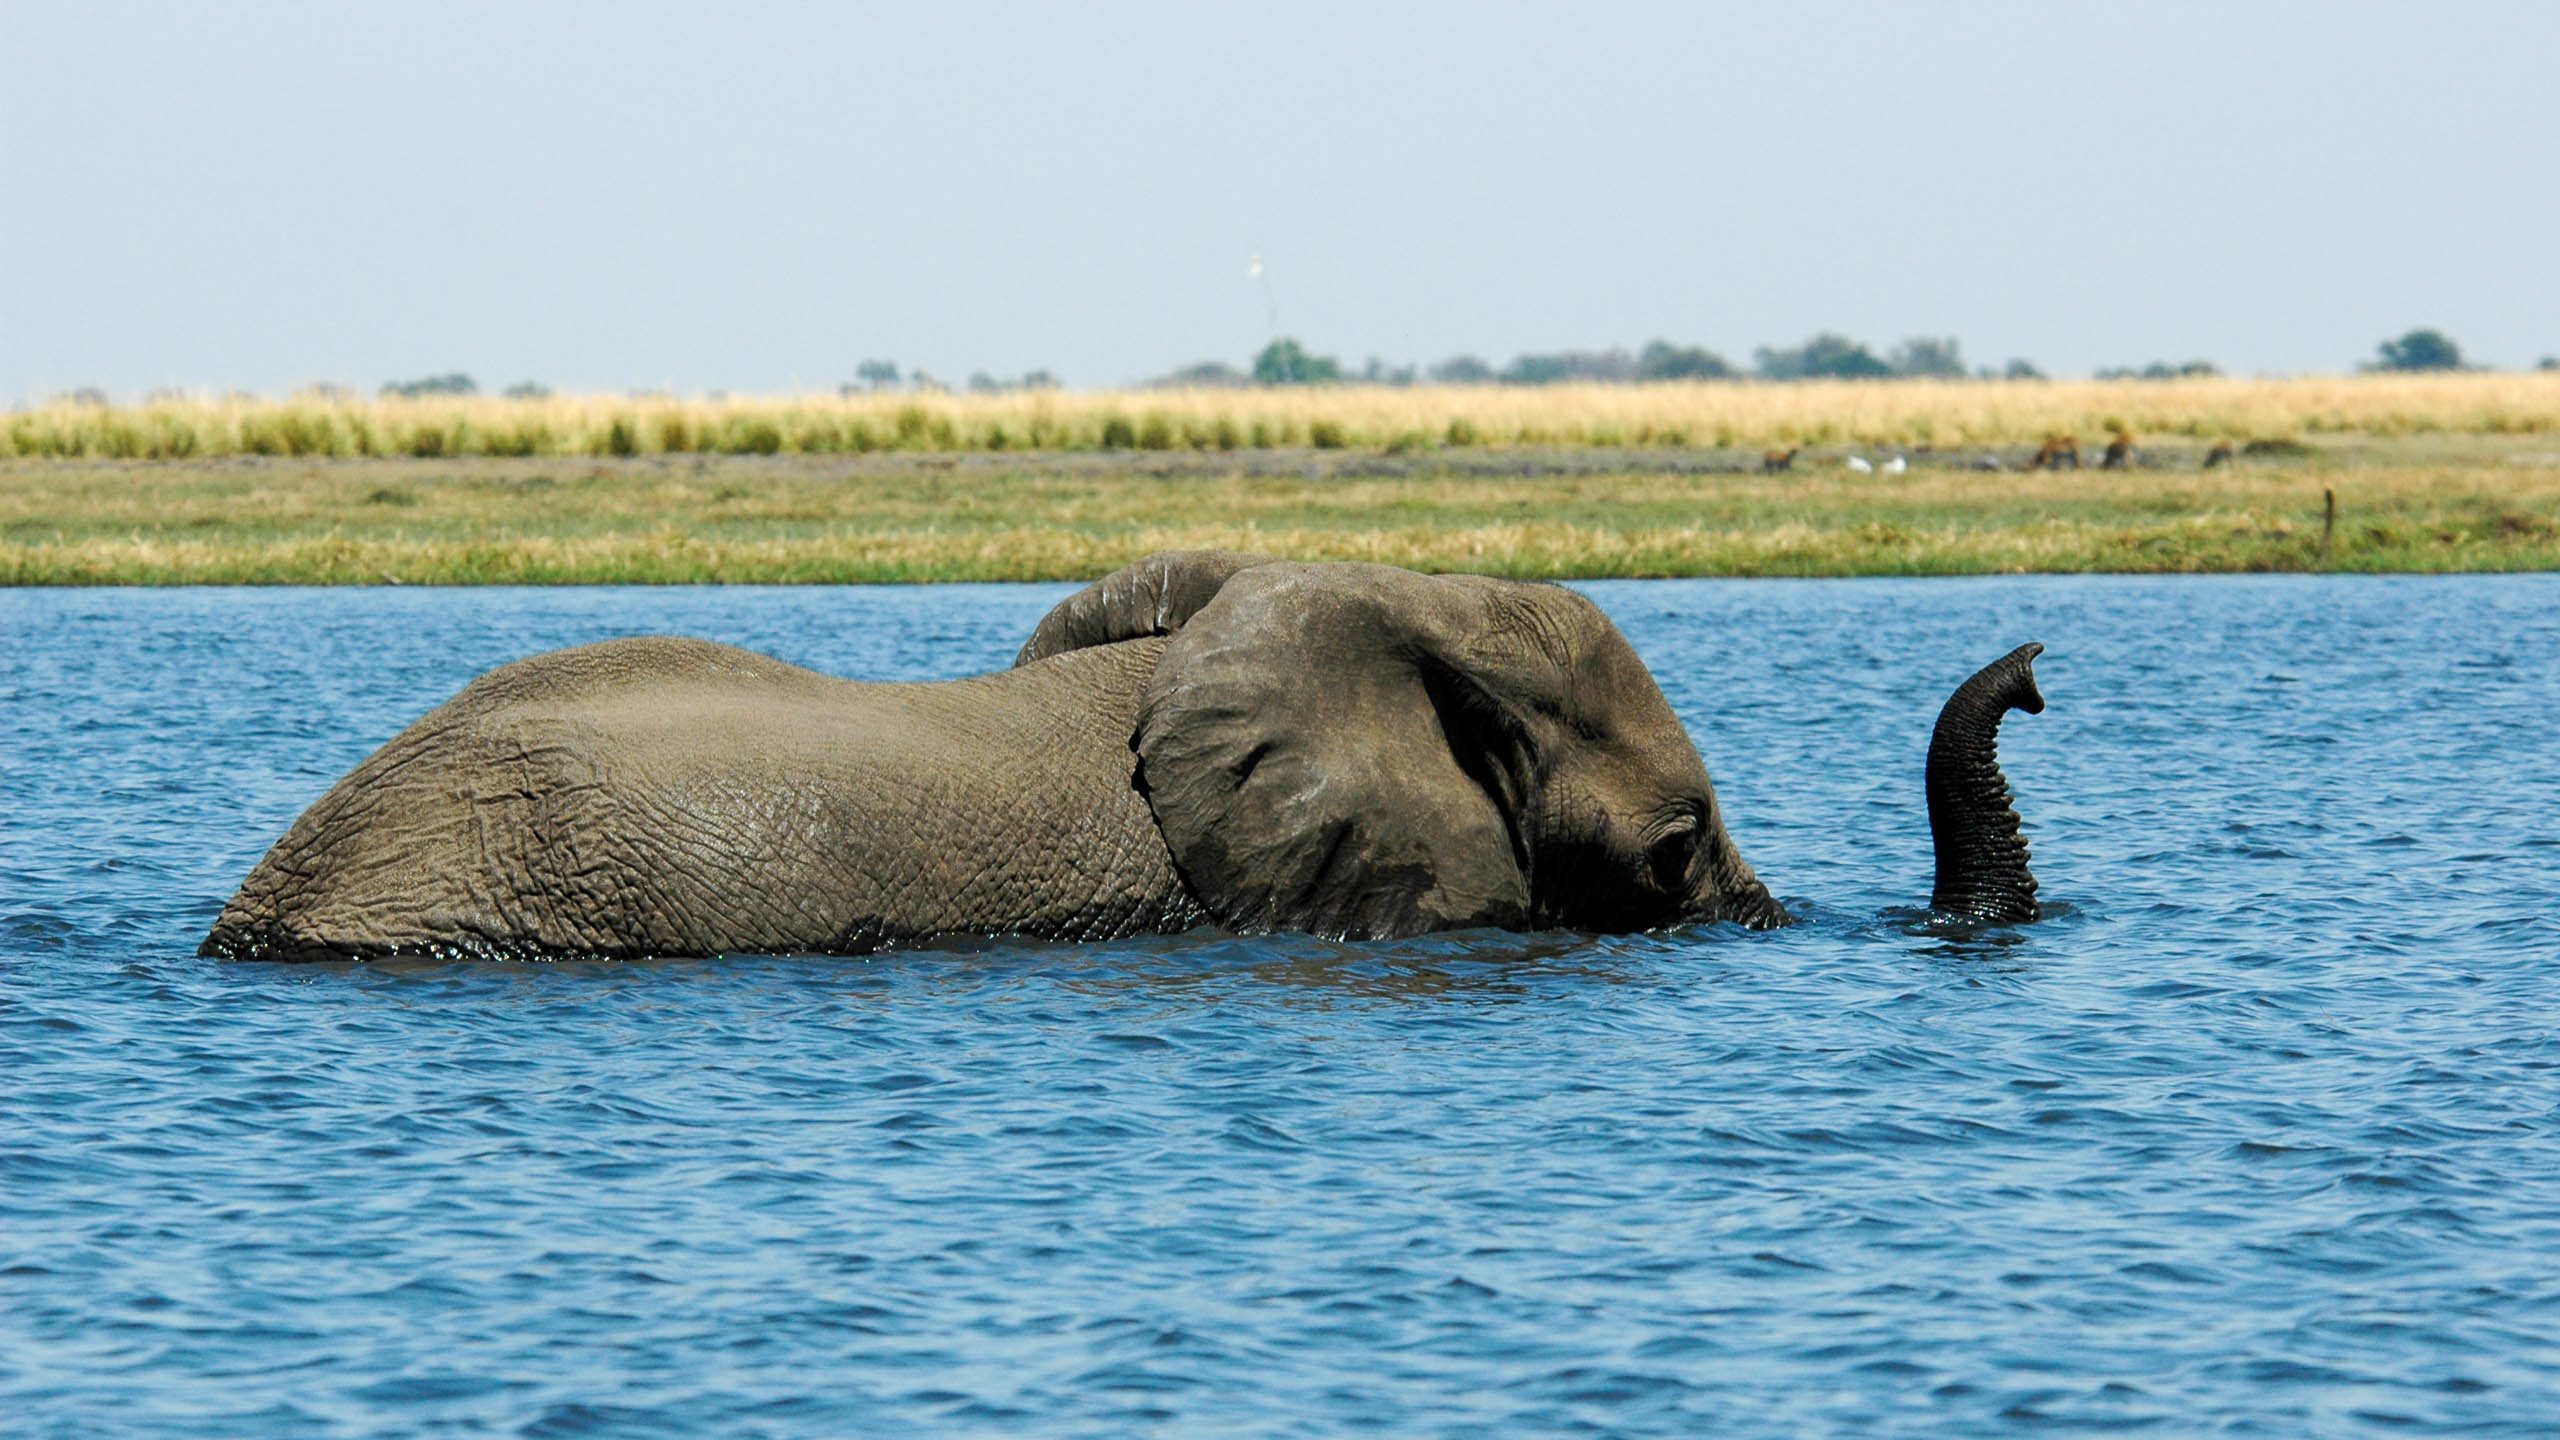 Botswana elephant rests half-submerged in water